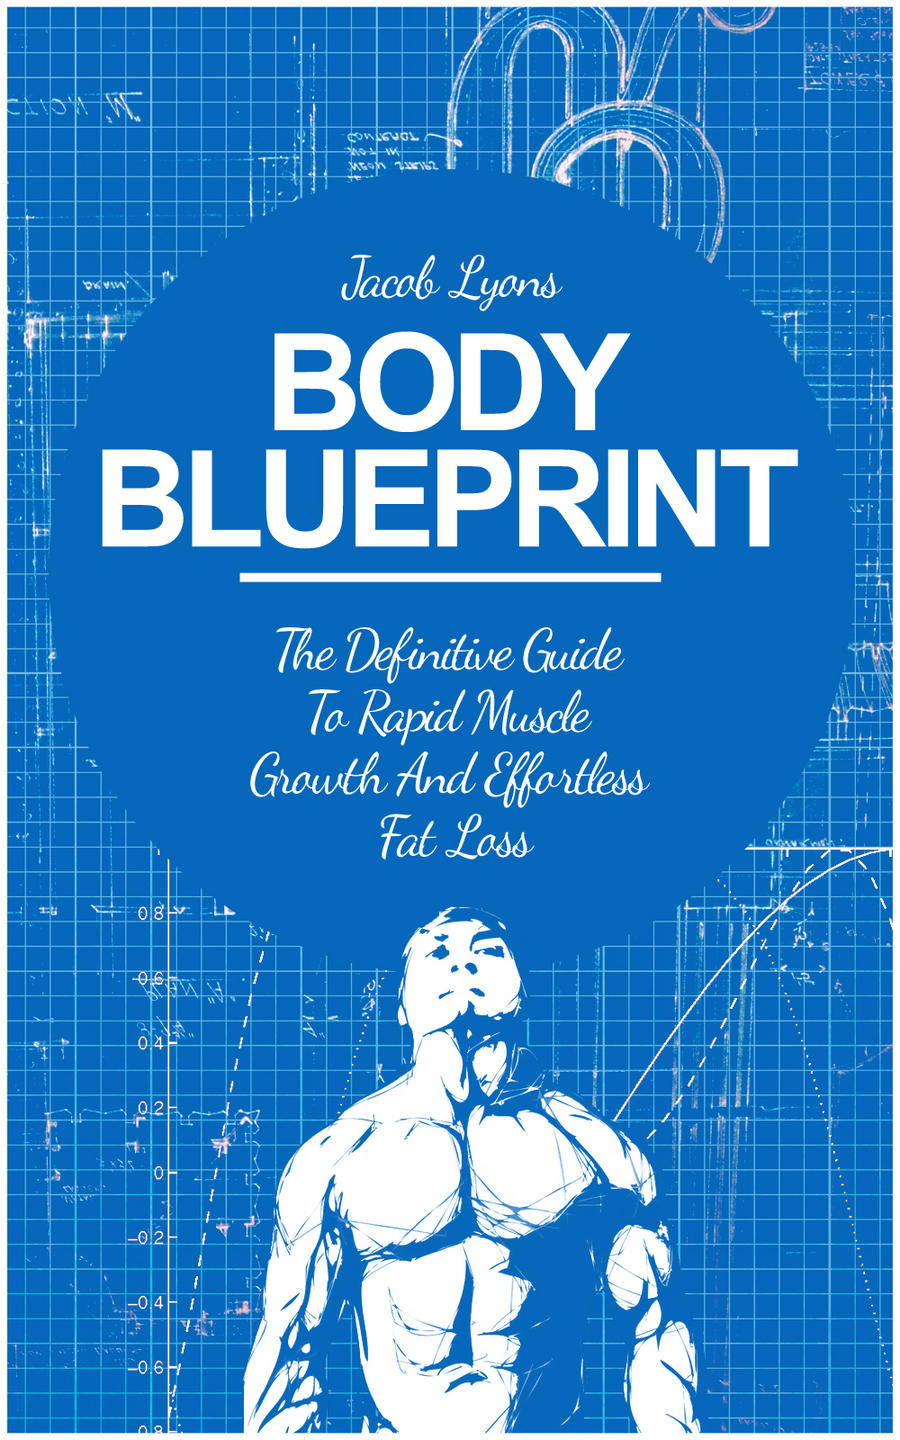 Body blueprint book cover by spice3boy on deviantart for Under wraps blueprint covers